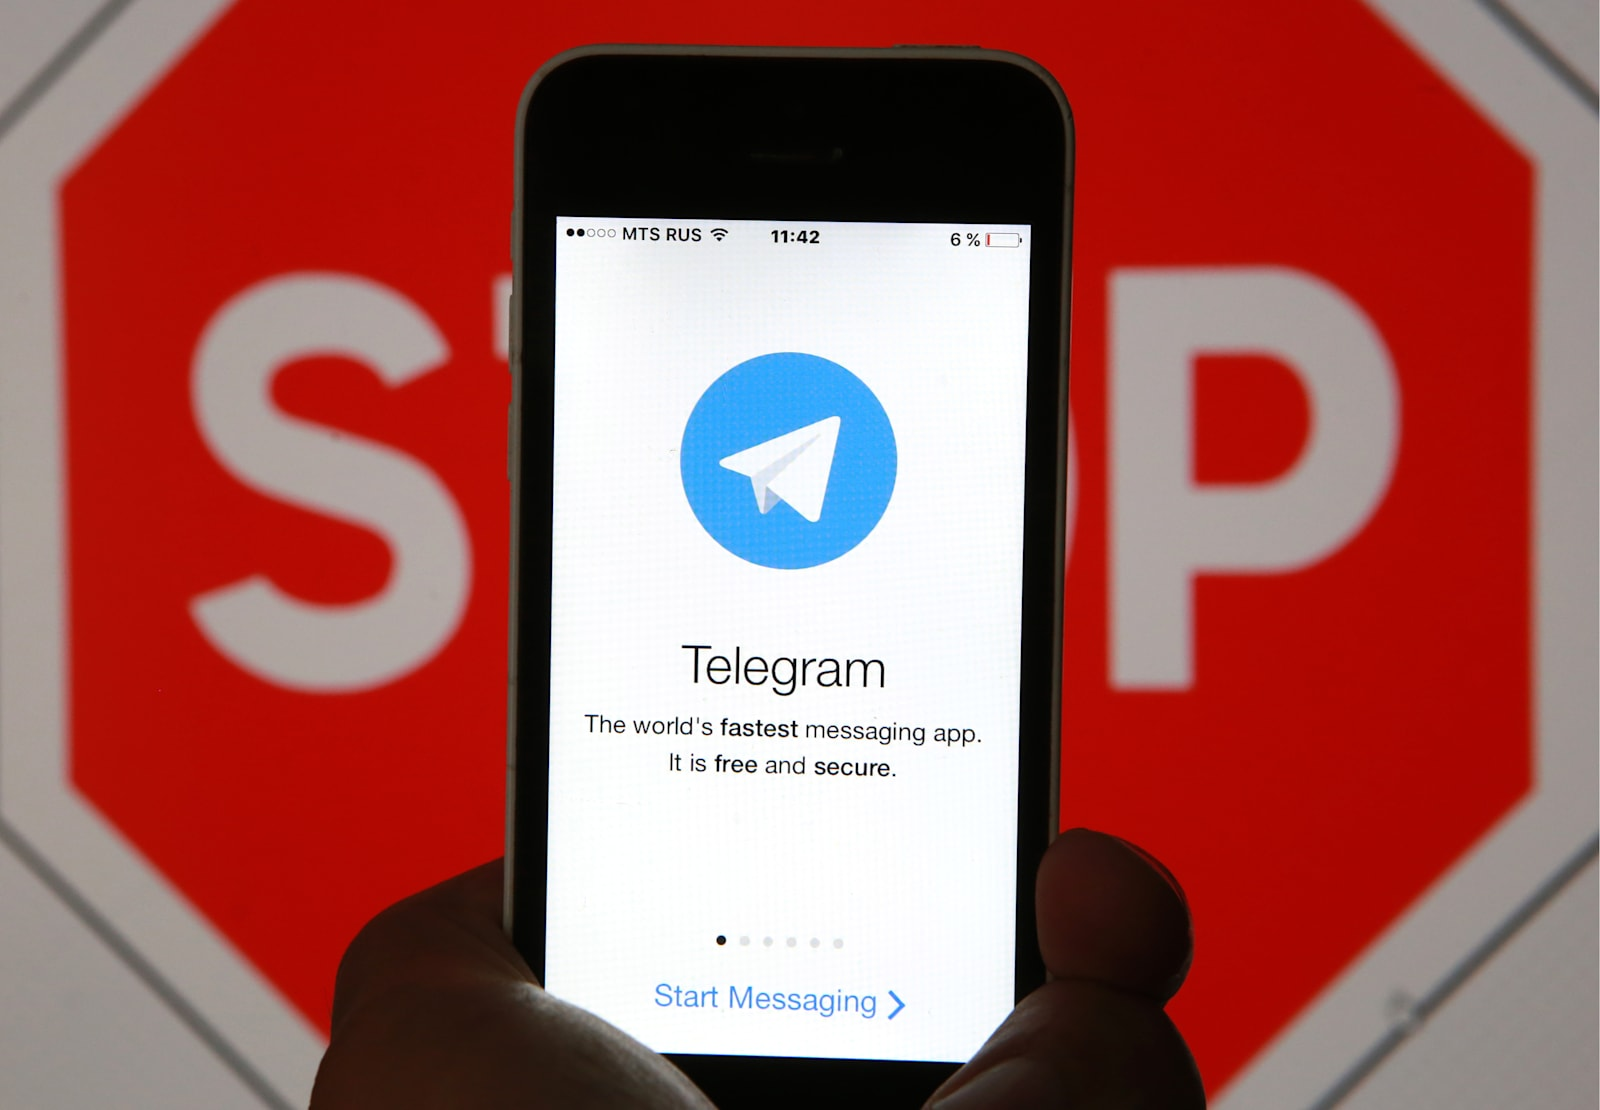 Telegram will register with Russia but won't share secure data